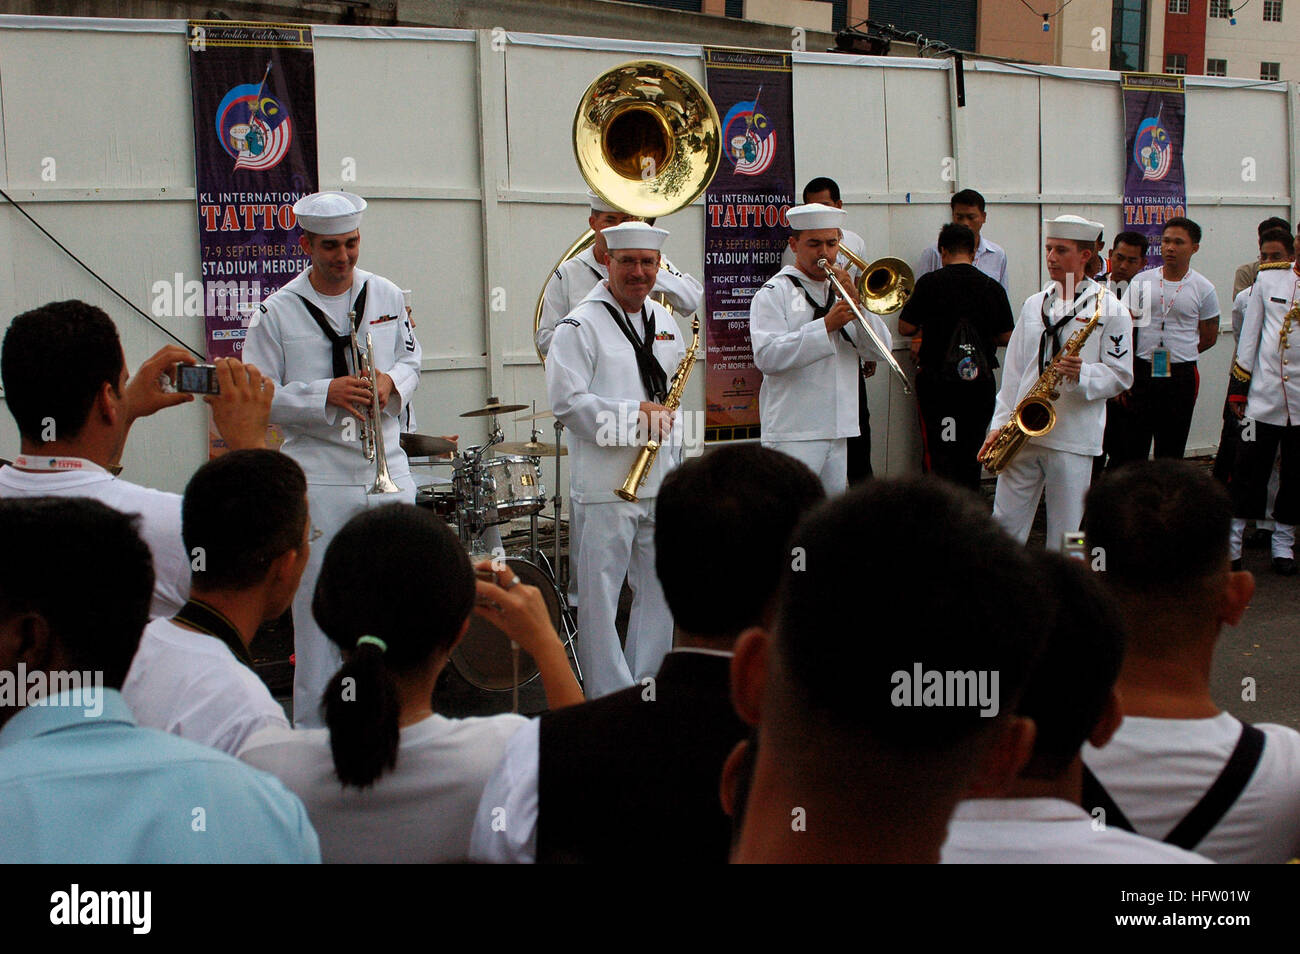 070907-N-5174T-007  KUALA LUMPUR, Malaysia (Sept. 7, 2007) - Sailors attached to the Pacific Fleet Band perform - Stock Image